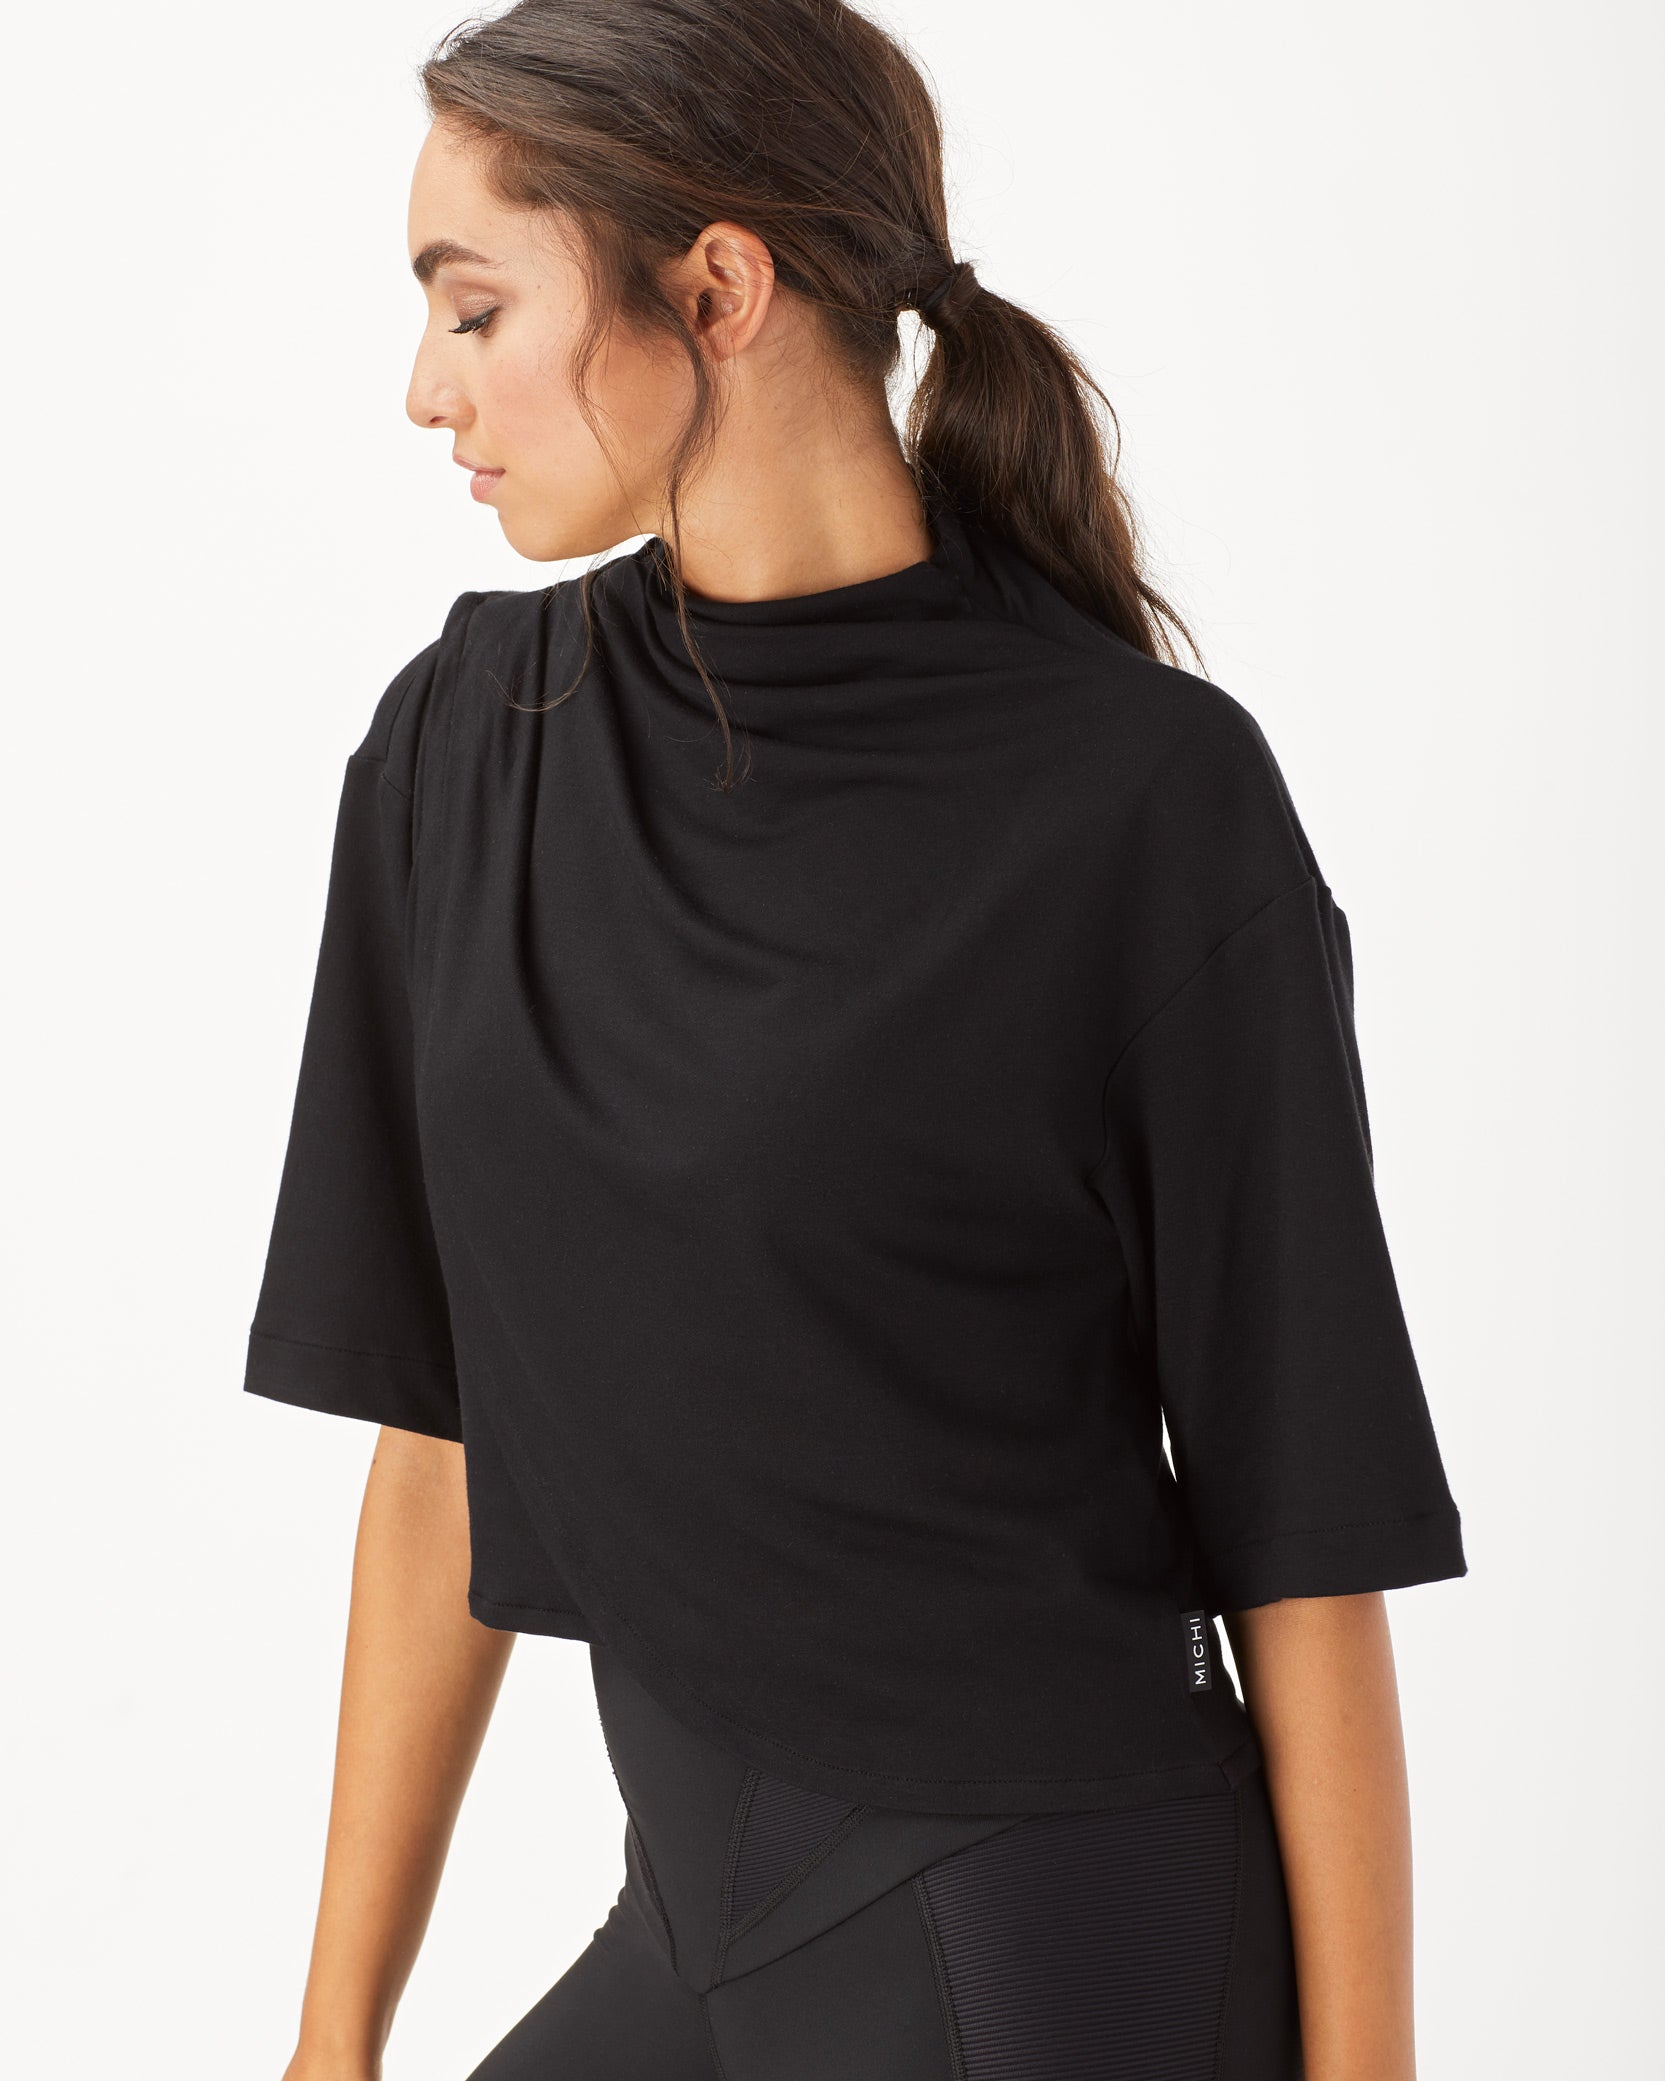 voyageur-crop-top-black